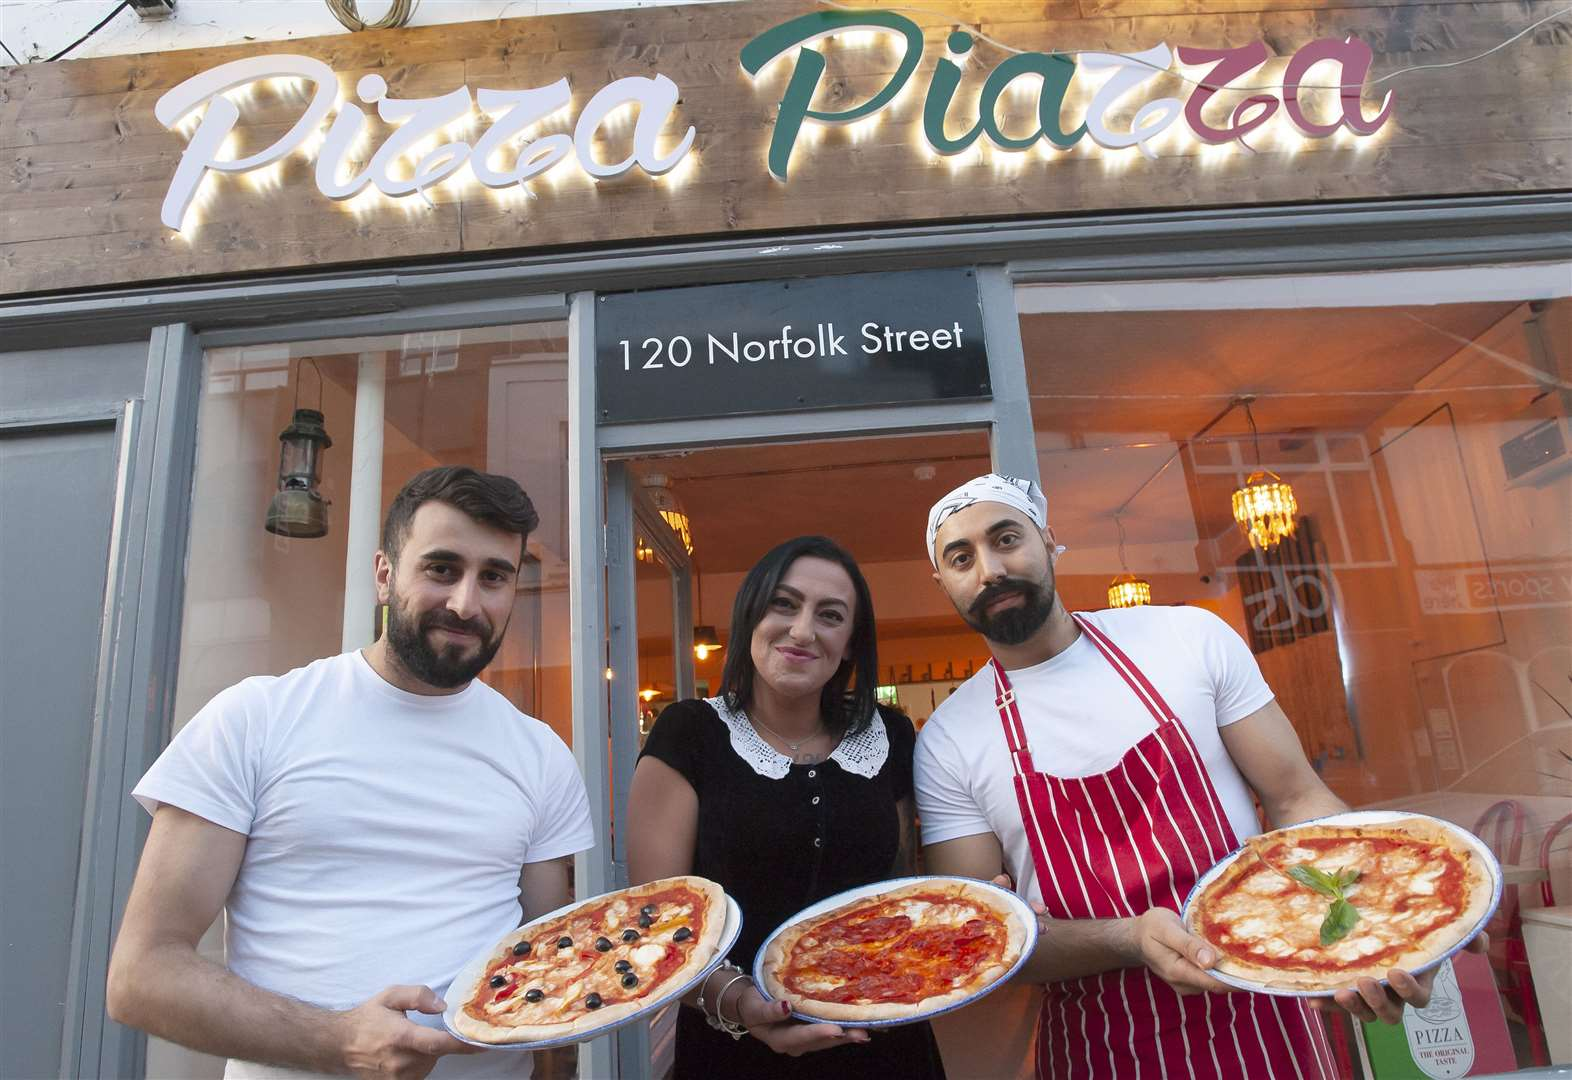 Restaurant serving authentic Italian food opens in Lynn town centre